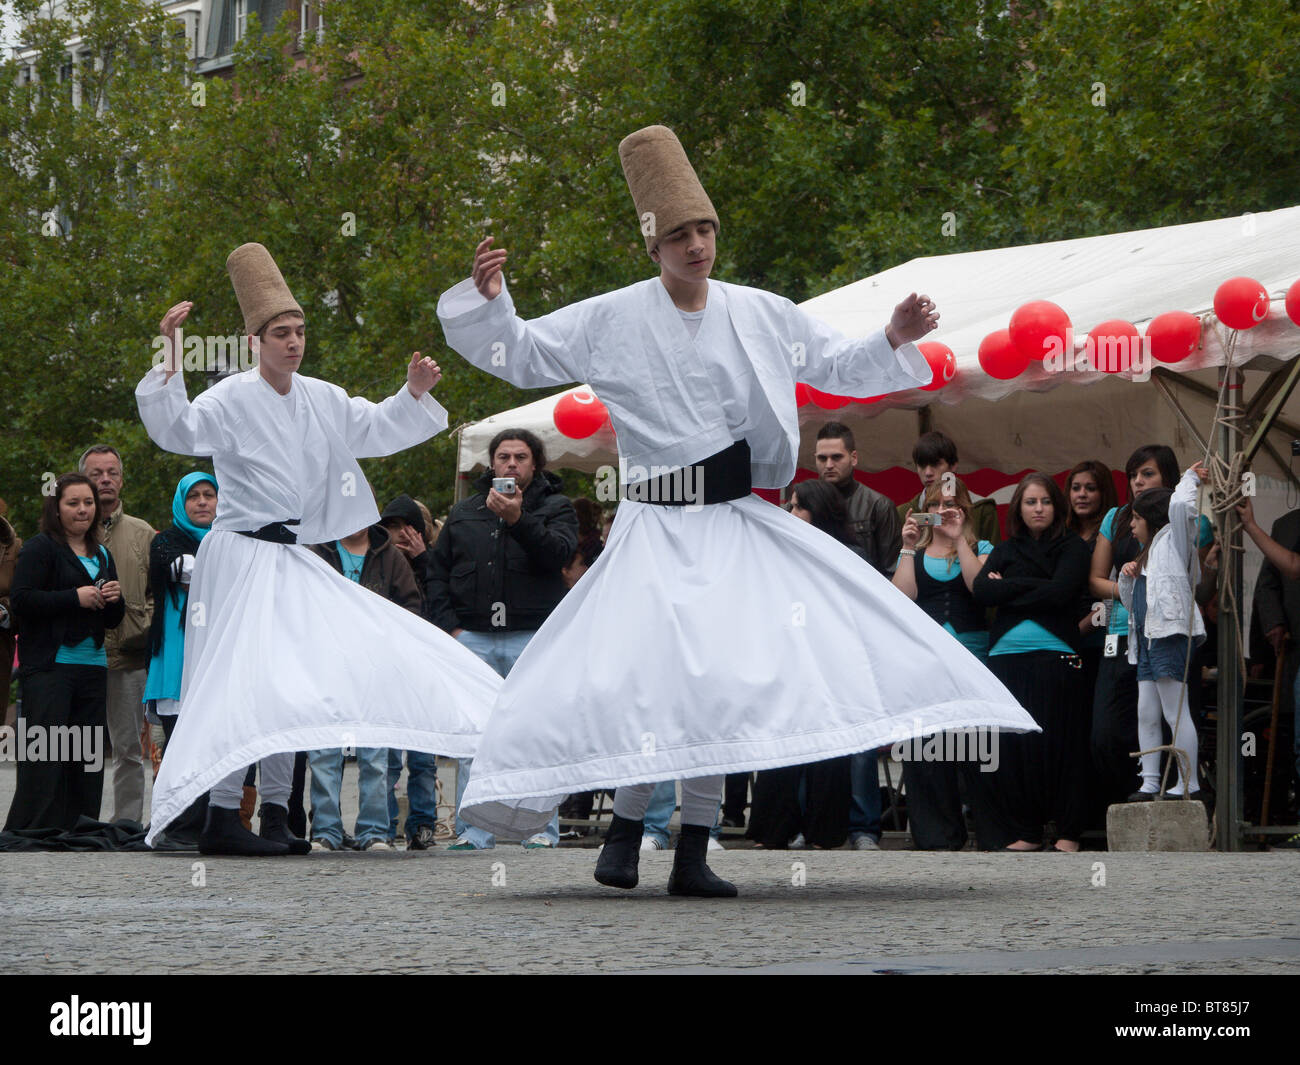 whirling dervishes give a display in Luxembourg City, Luxembourg - Stock Image